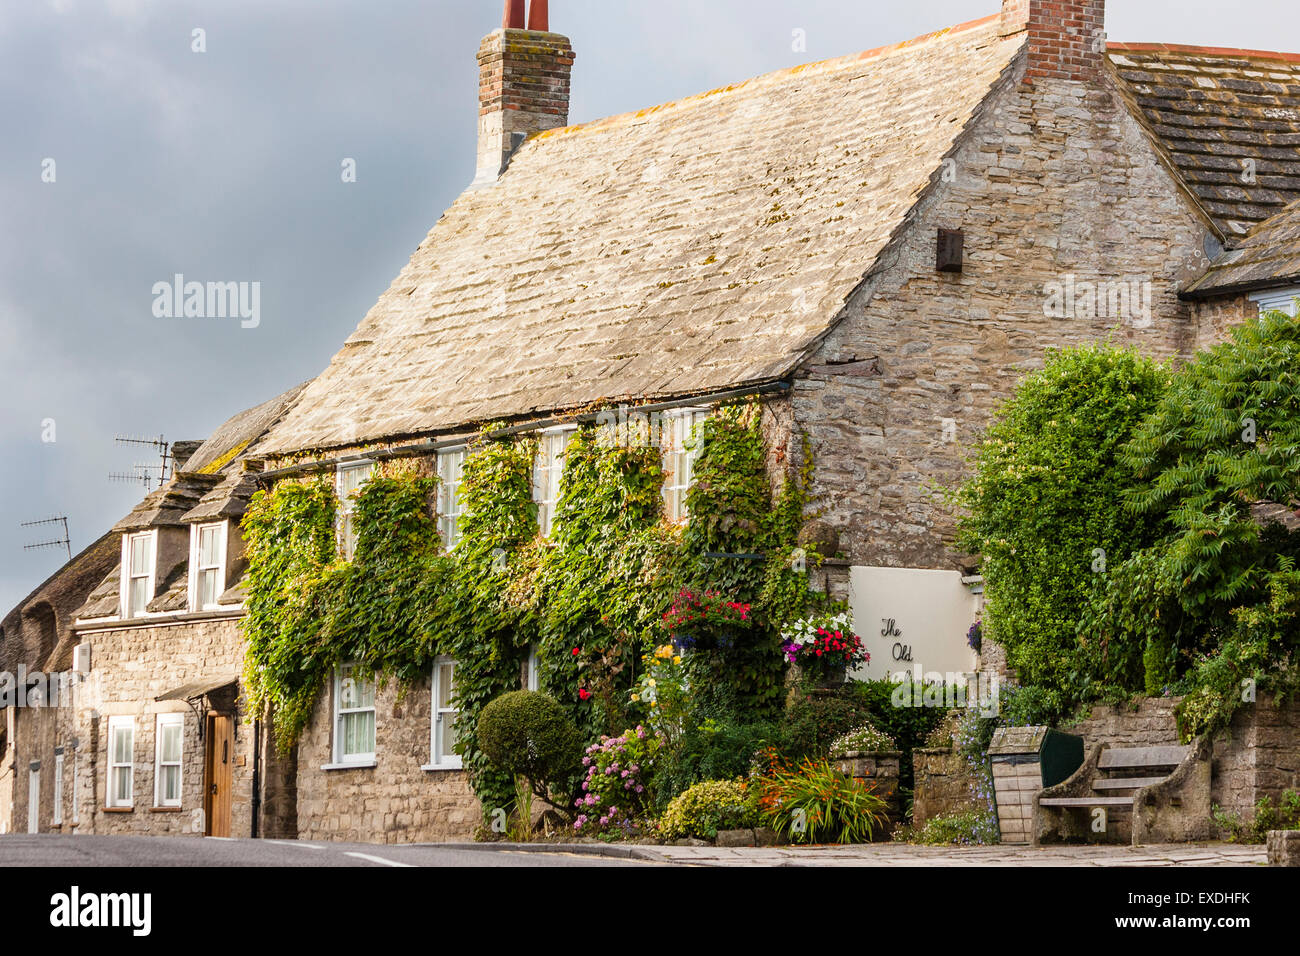 Typical old world English village, large stone house covered in ivy, Corfe, Dorset, dark skies, view along - Stock Image